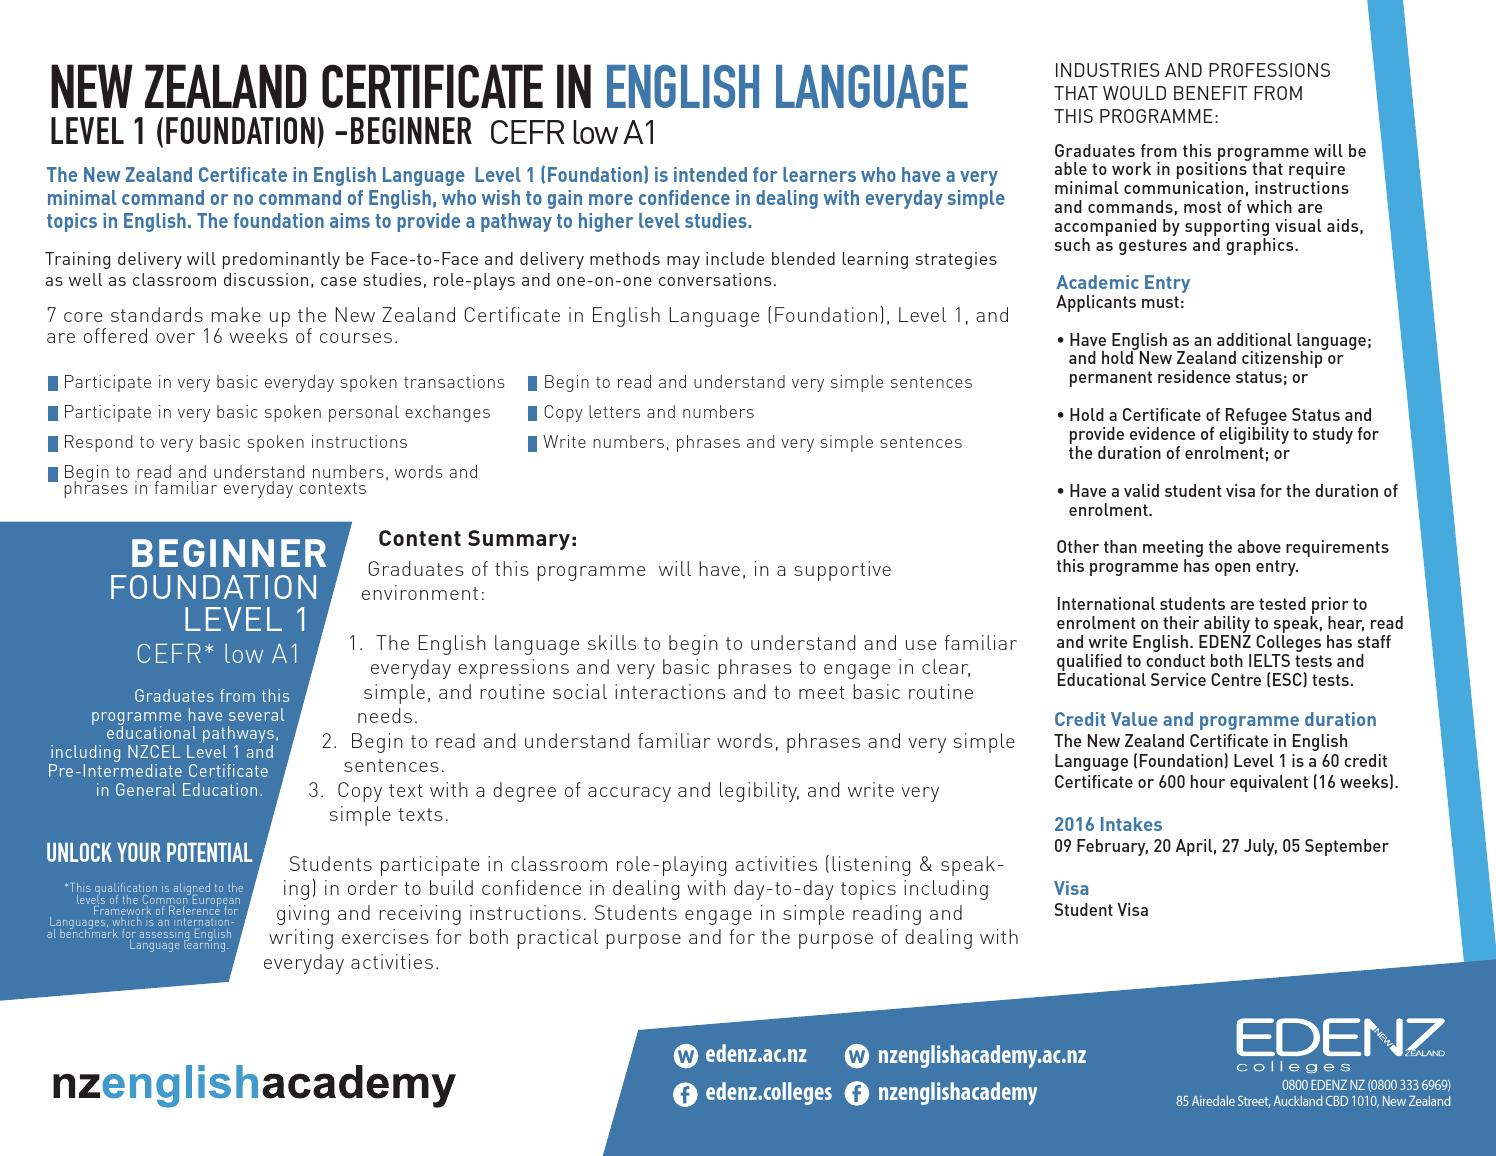 Nzcel new zealand certificate in english language by edenz nzcel new zealand certificate in english language by edenz colleges issuu yelopaper Image collections